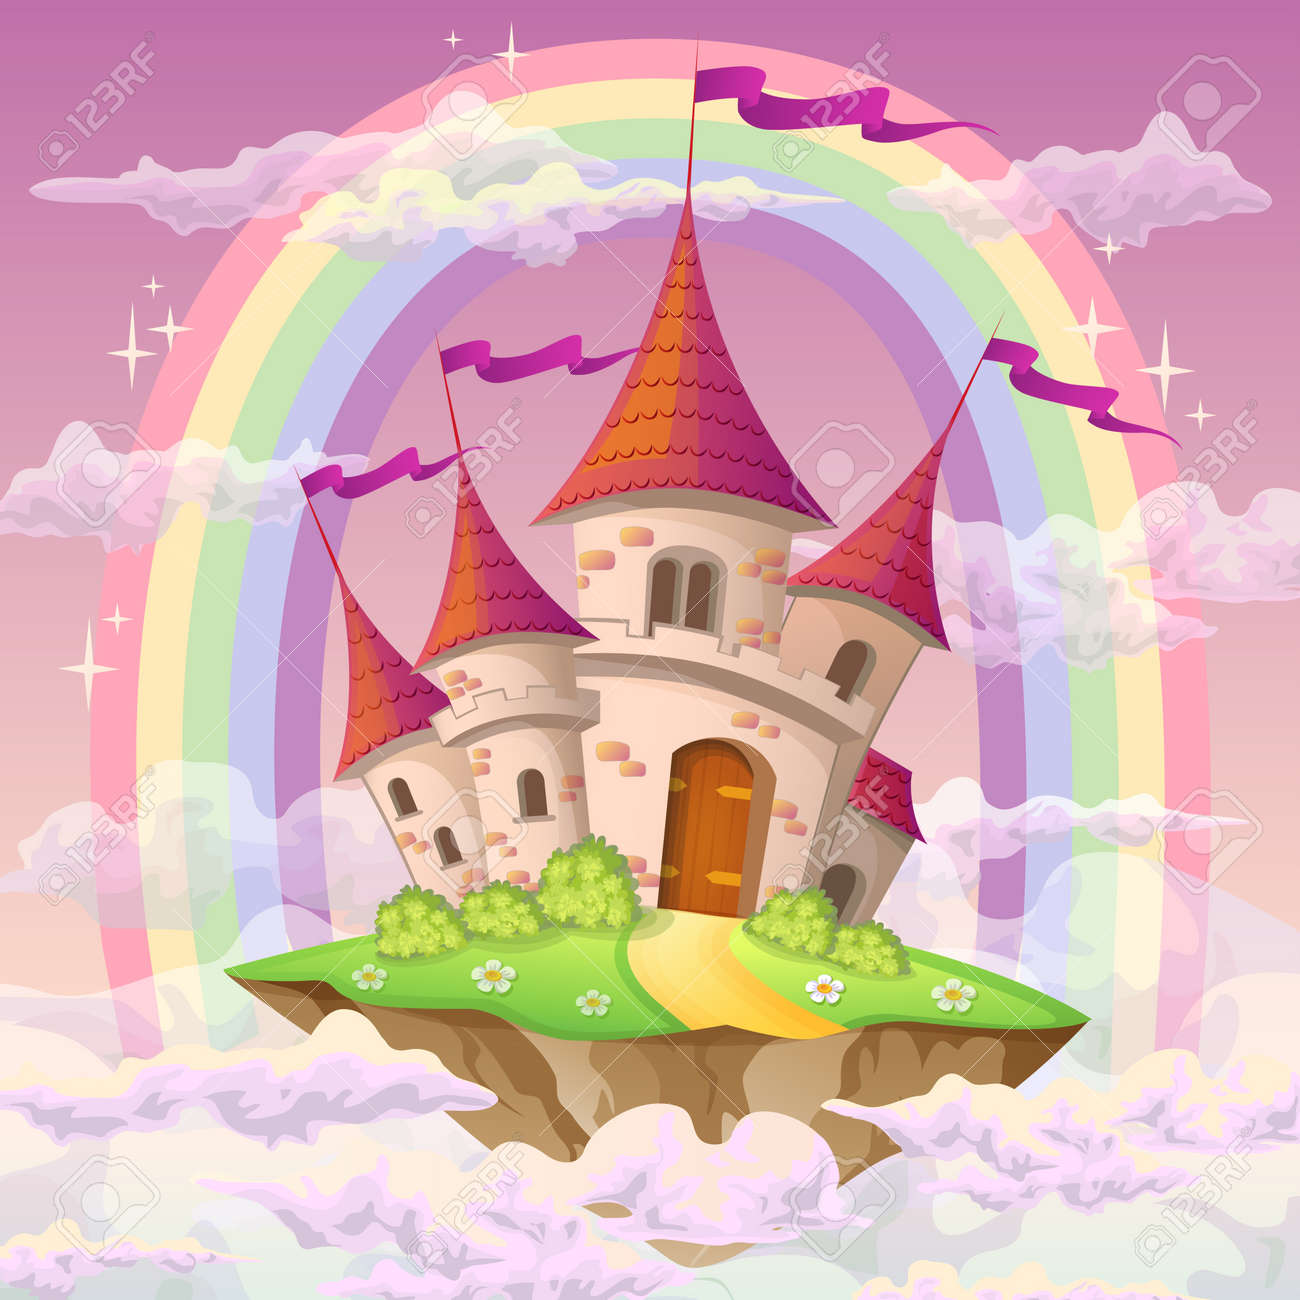 Fantasy flying island with fairy tale castle and rainbow in clouds - 105038937